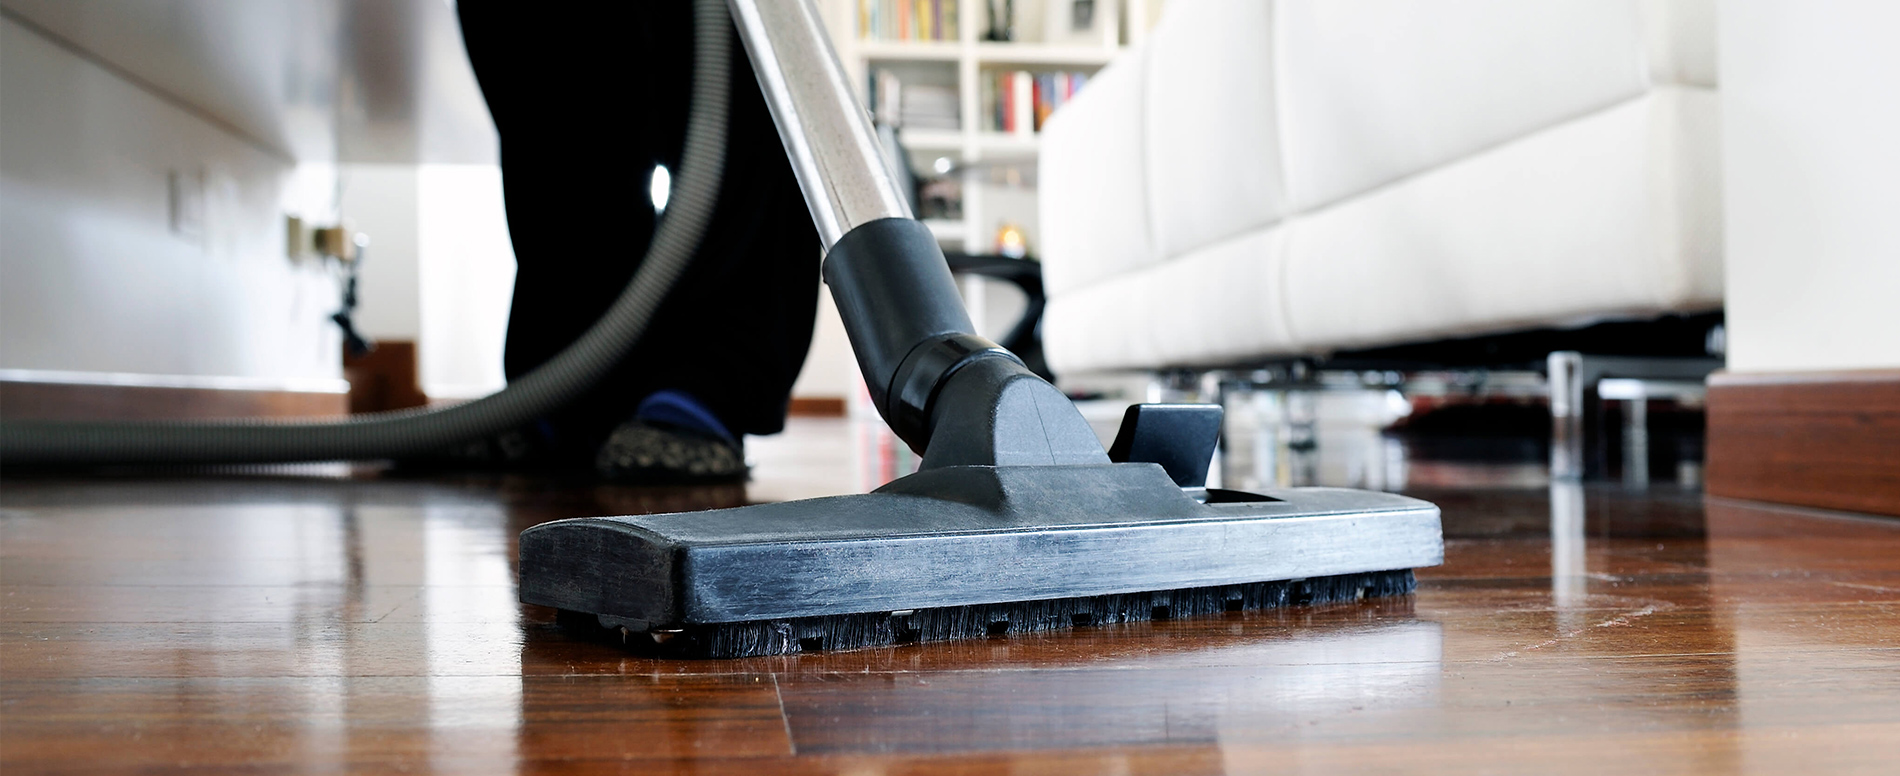 infinity cleaning services